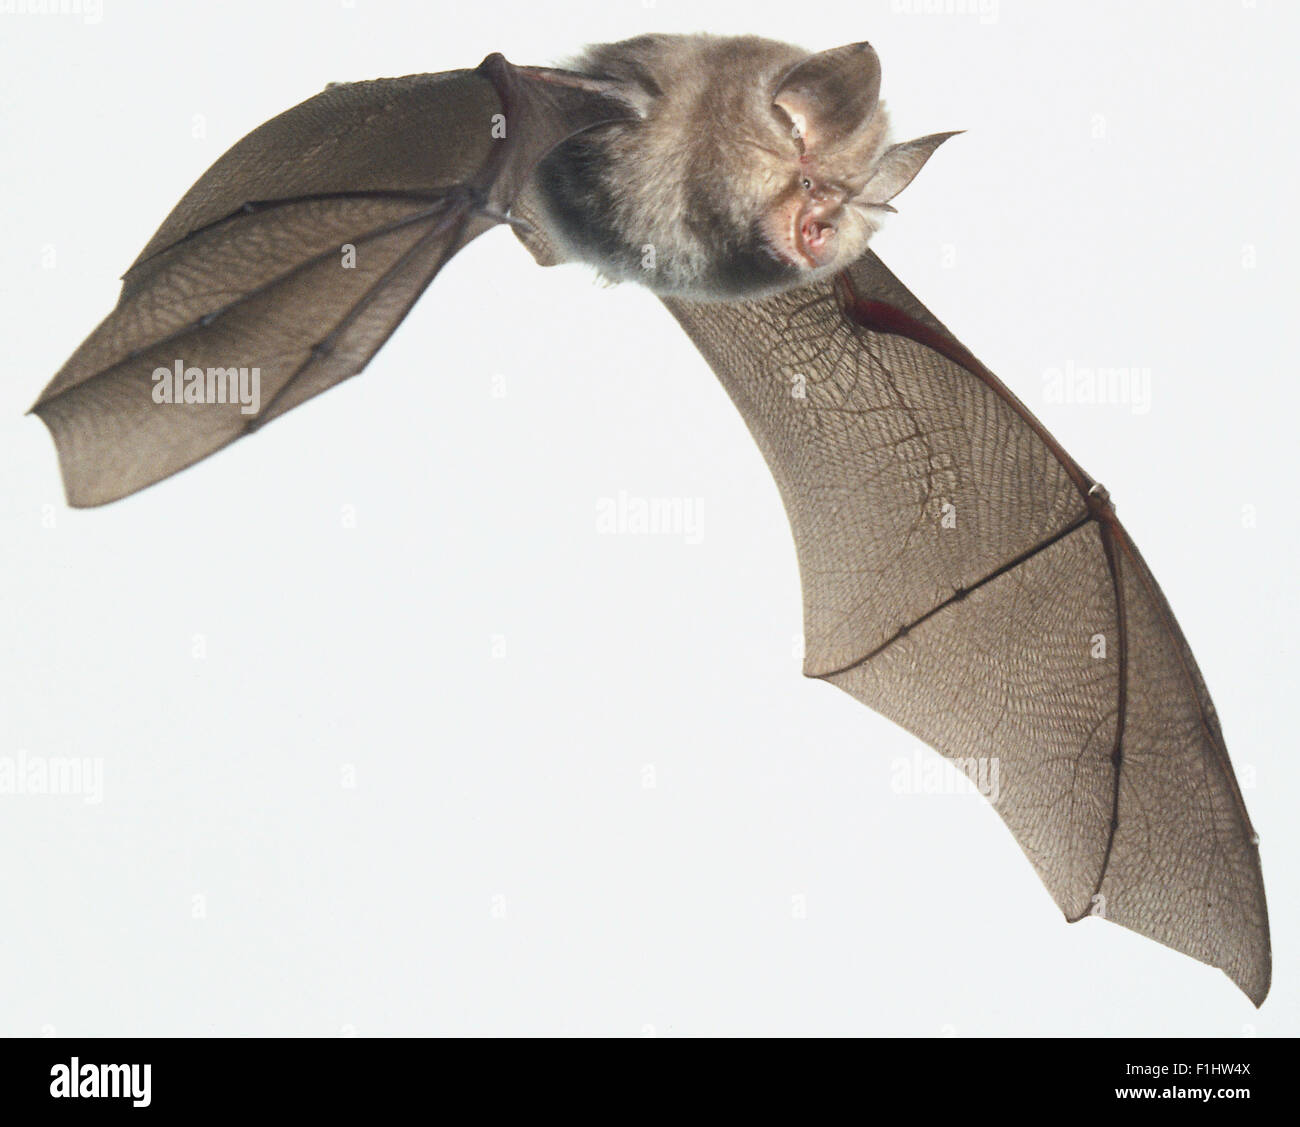 rhinolophus hipposideros lesser horseshoe bat family stock